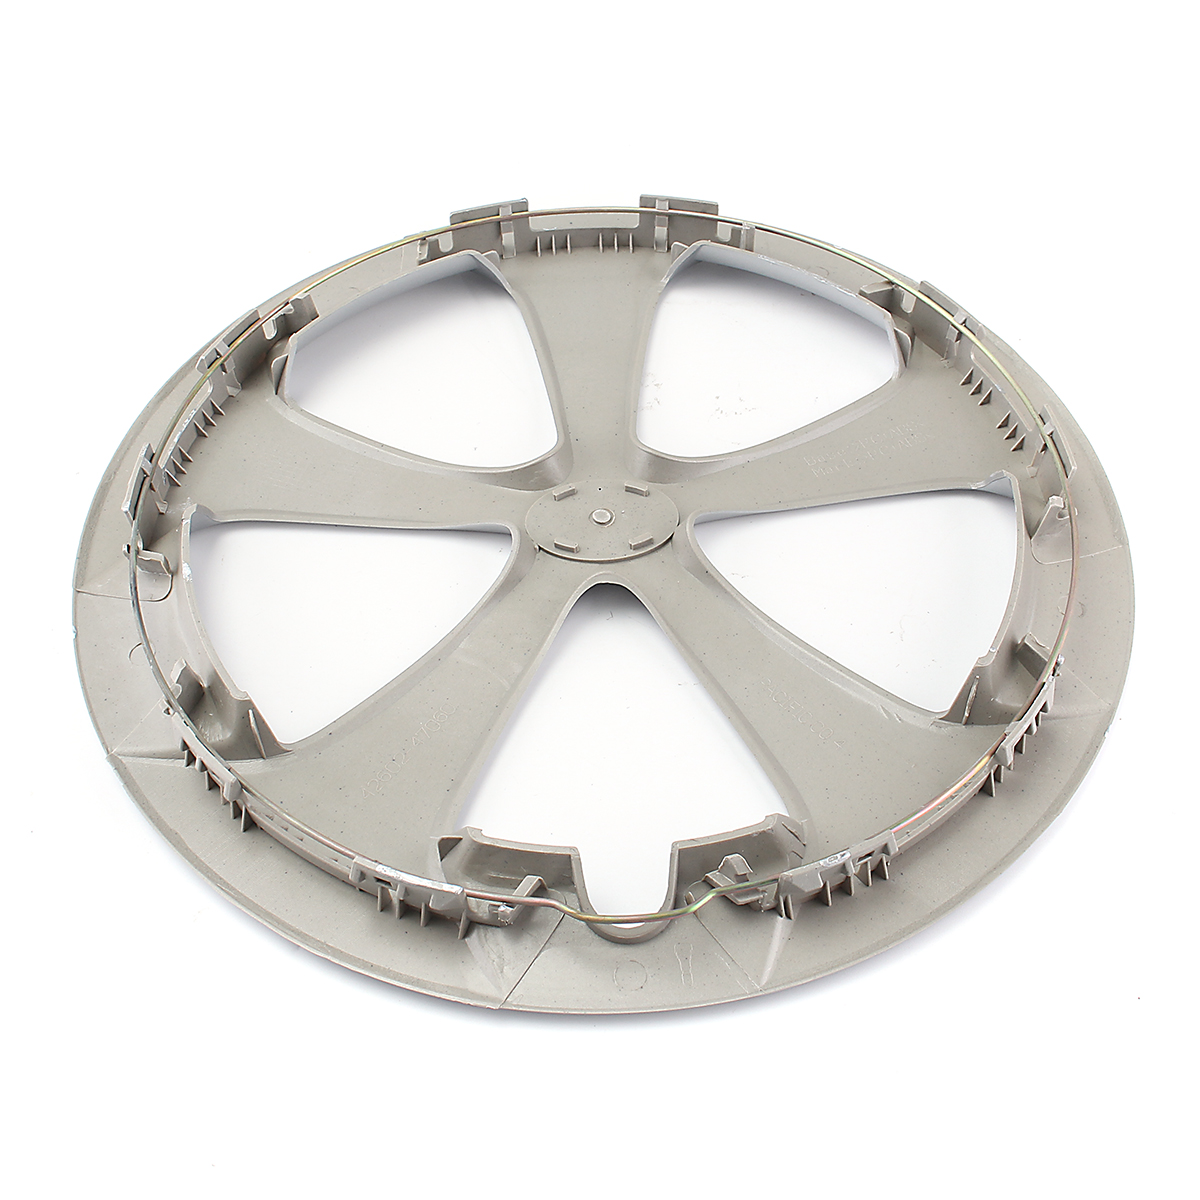 40.8cm Silver Plastic Car Wheel Tire Cover for Toyota Prius/Prius C 2012-2015